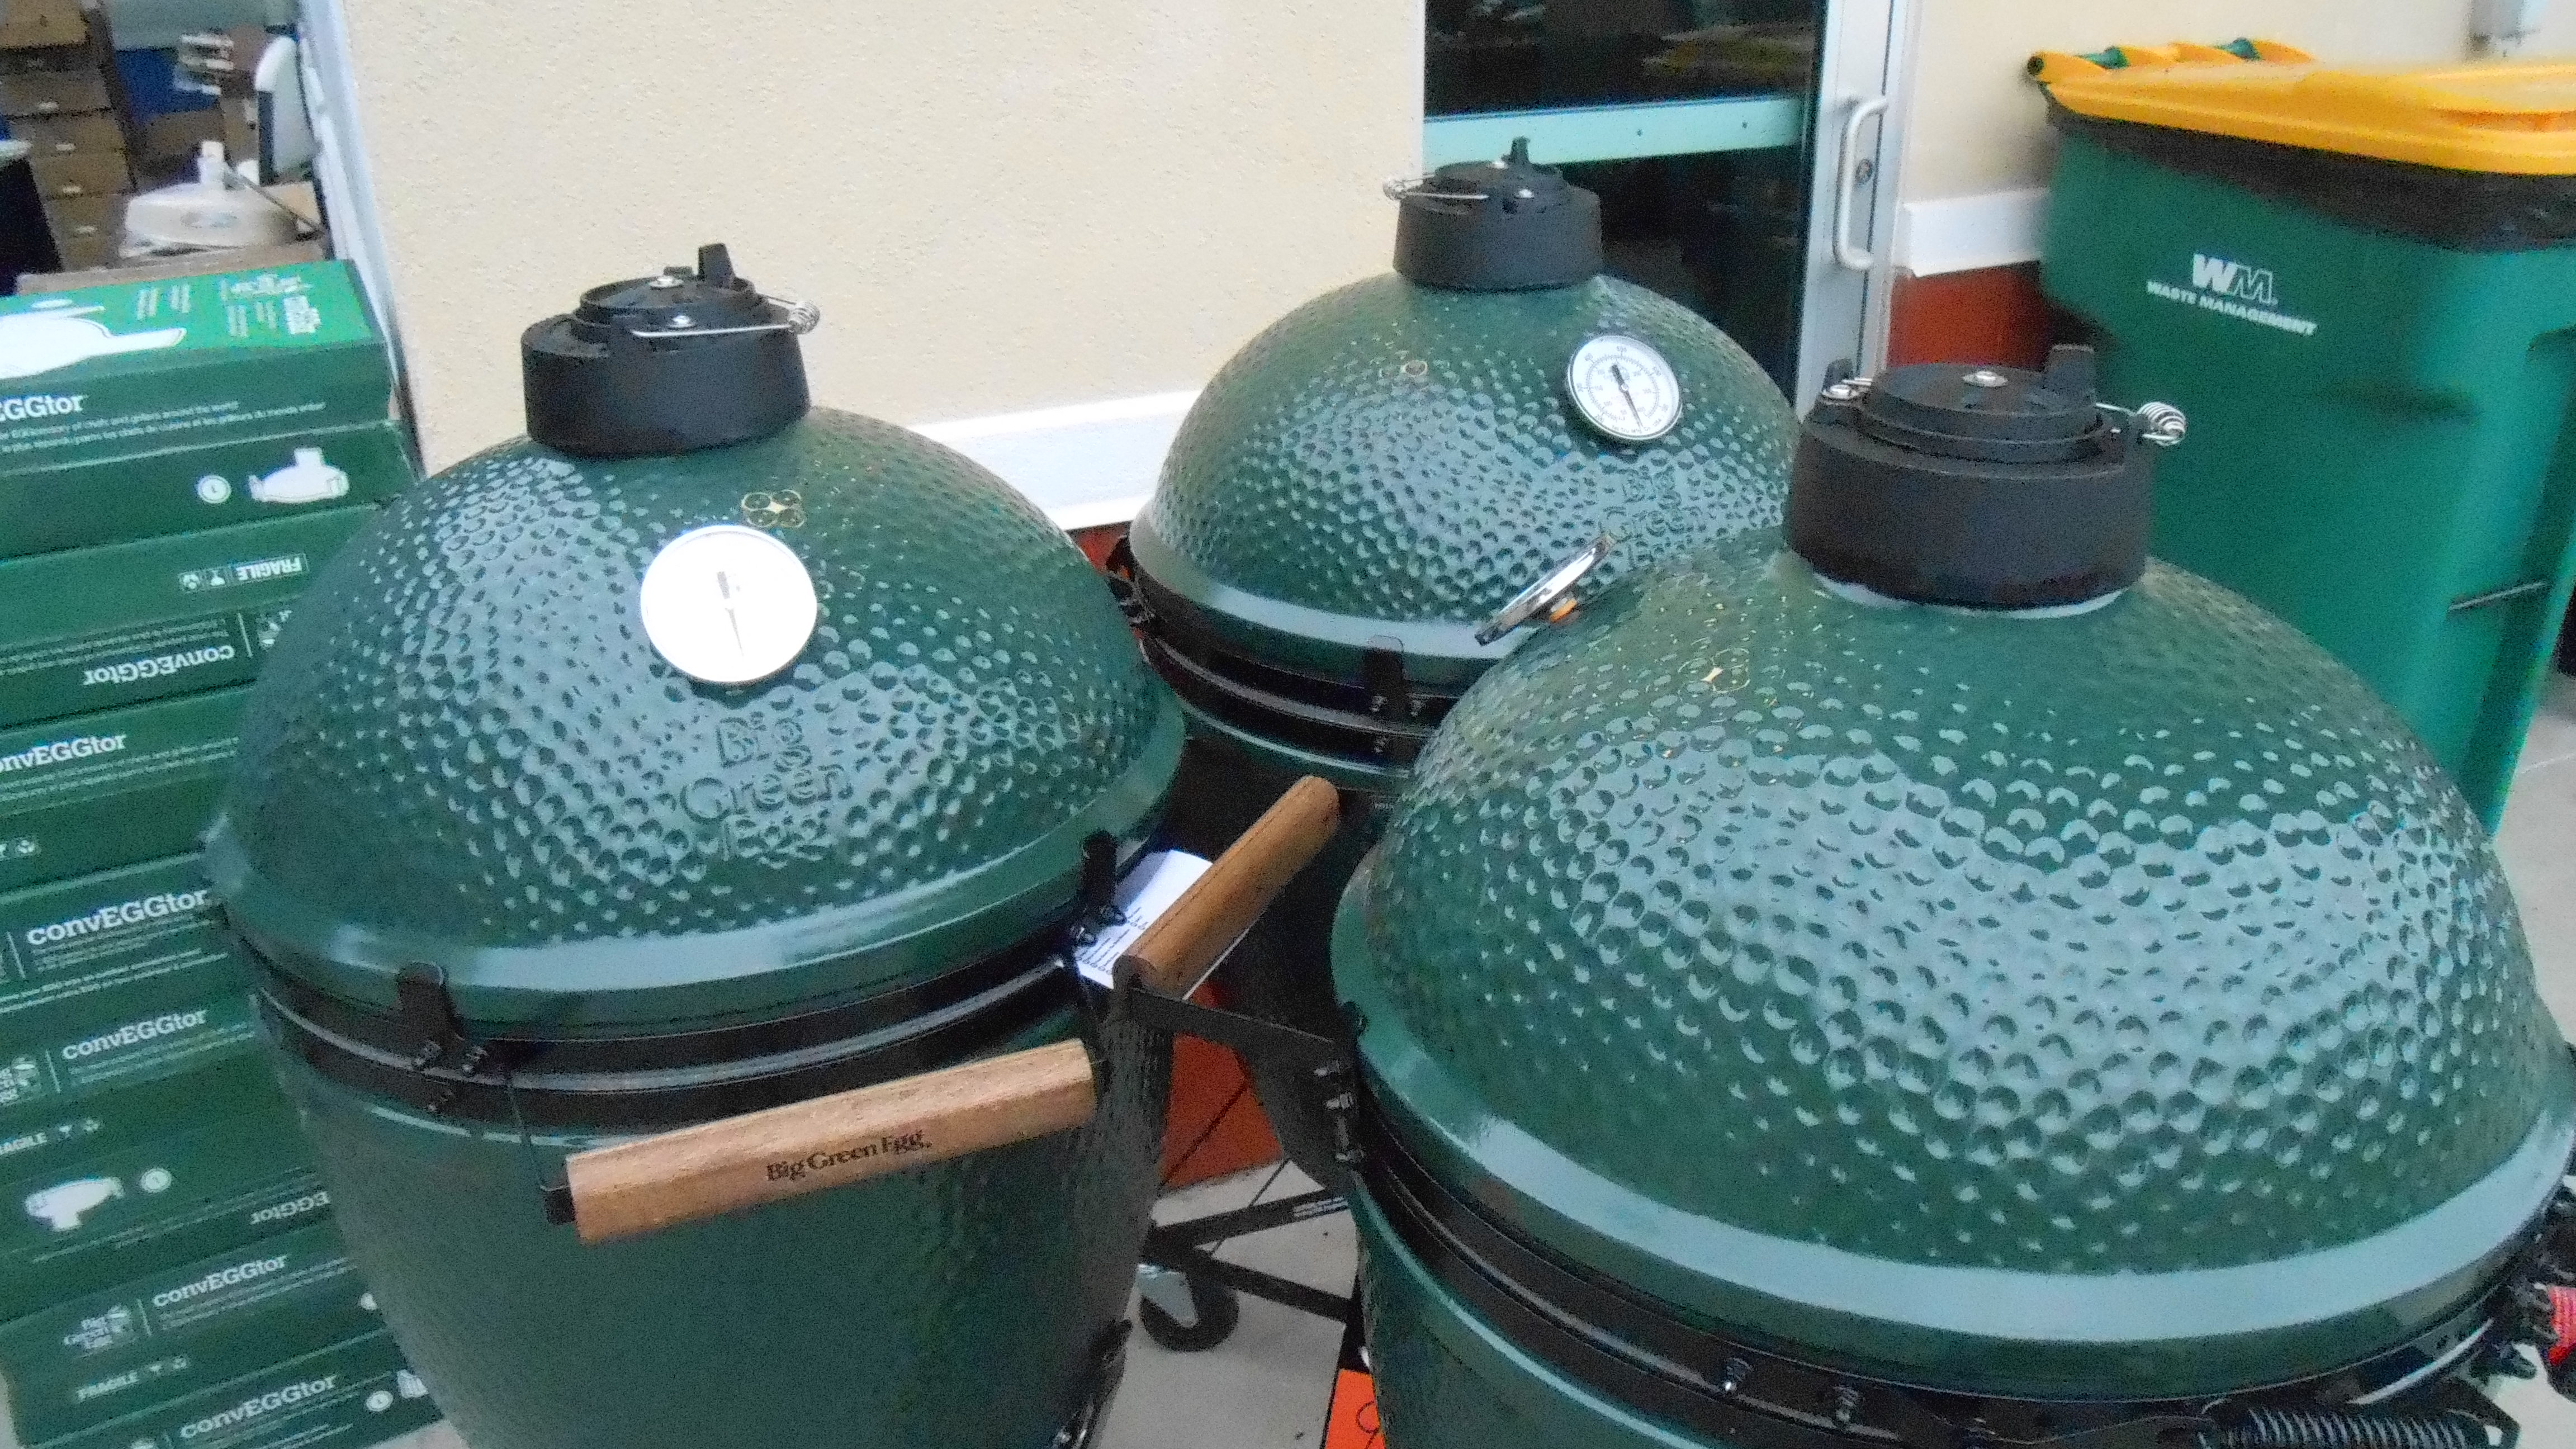 Green Egg Cookers